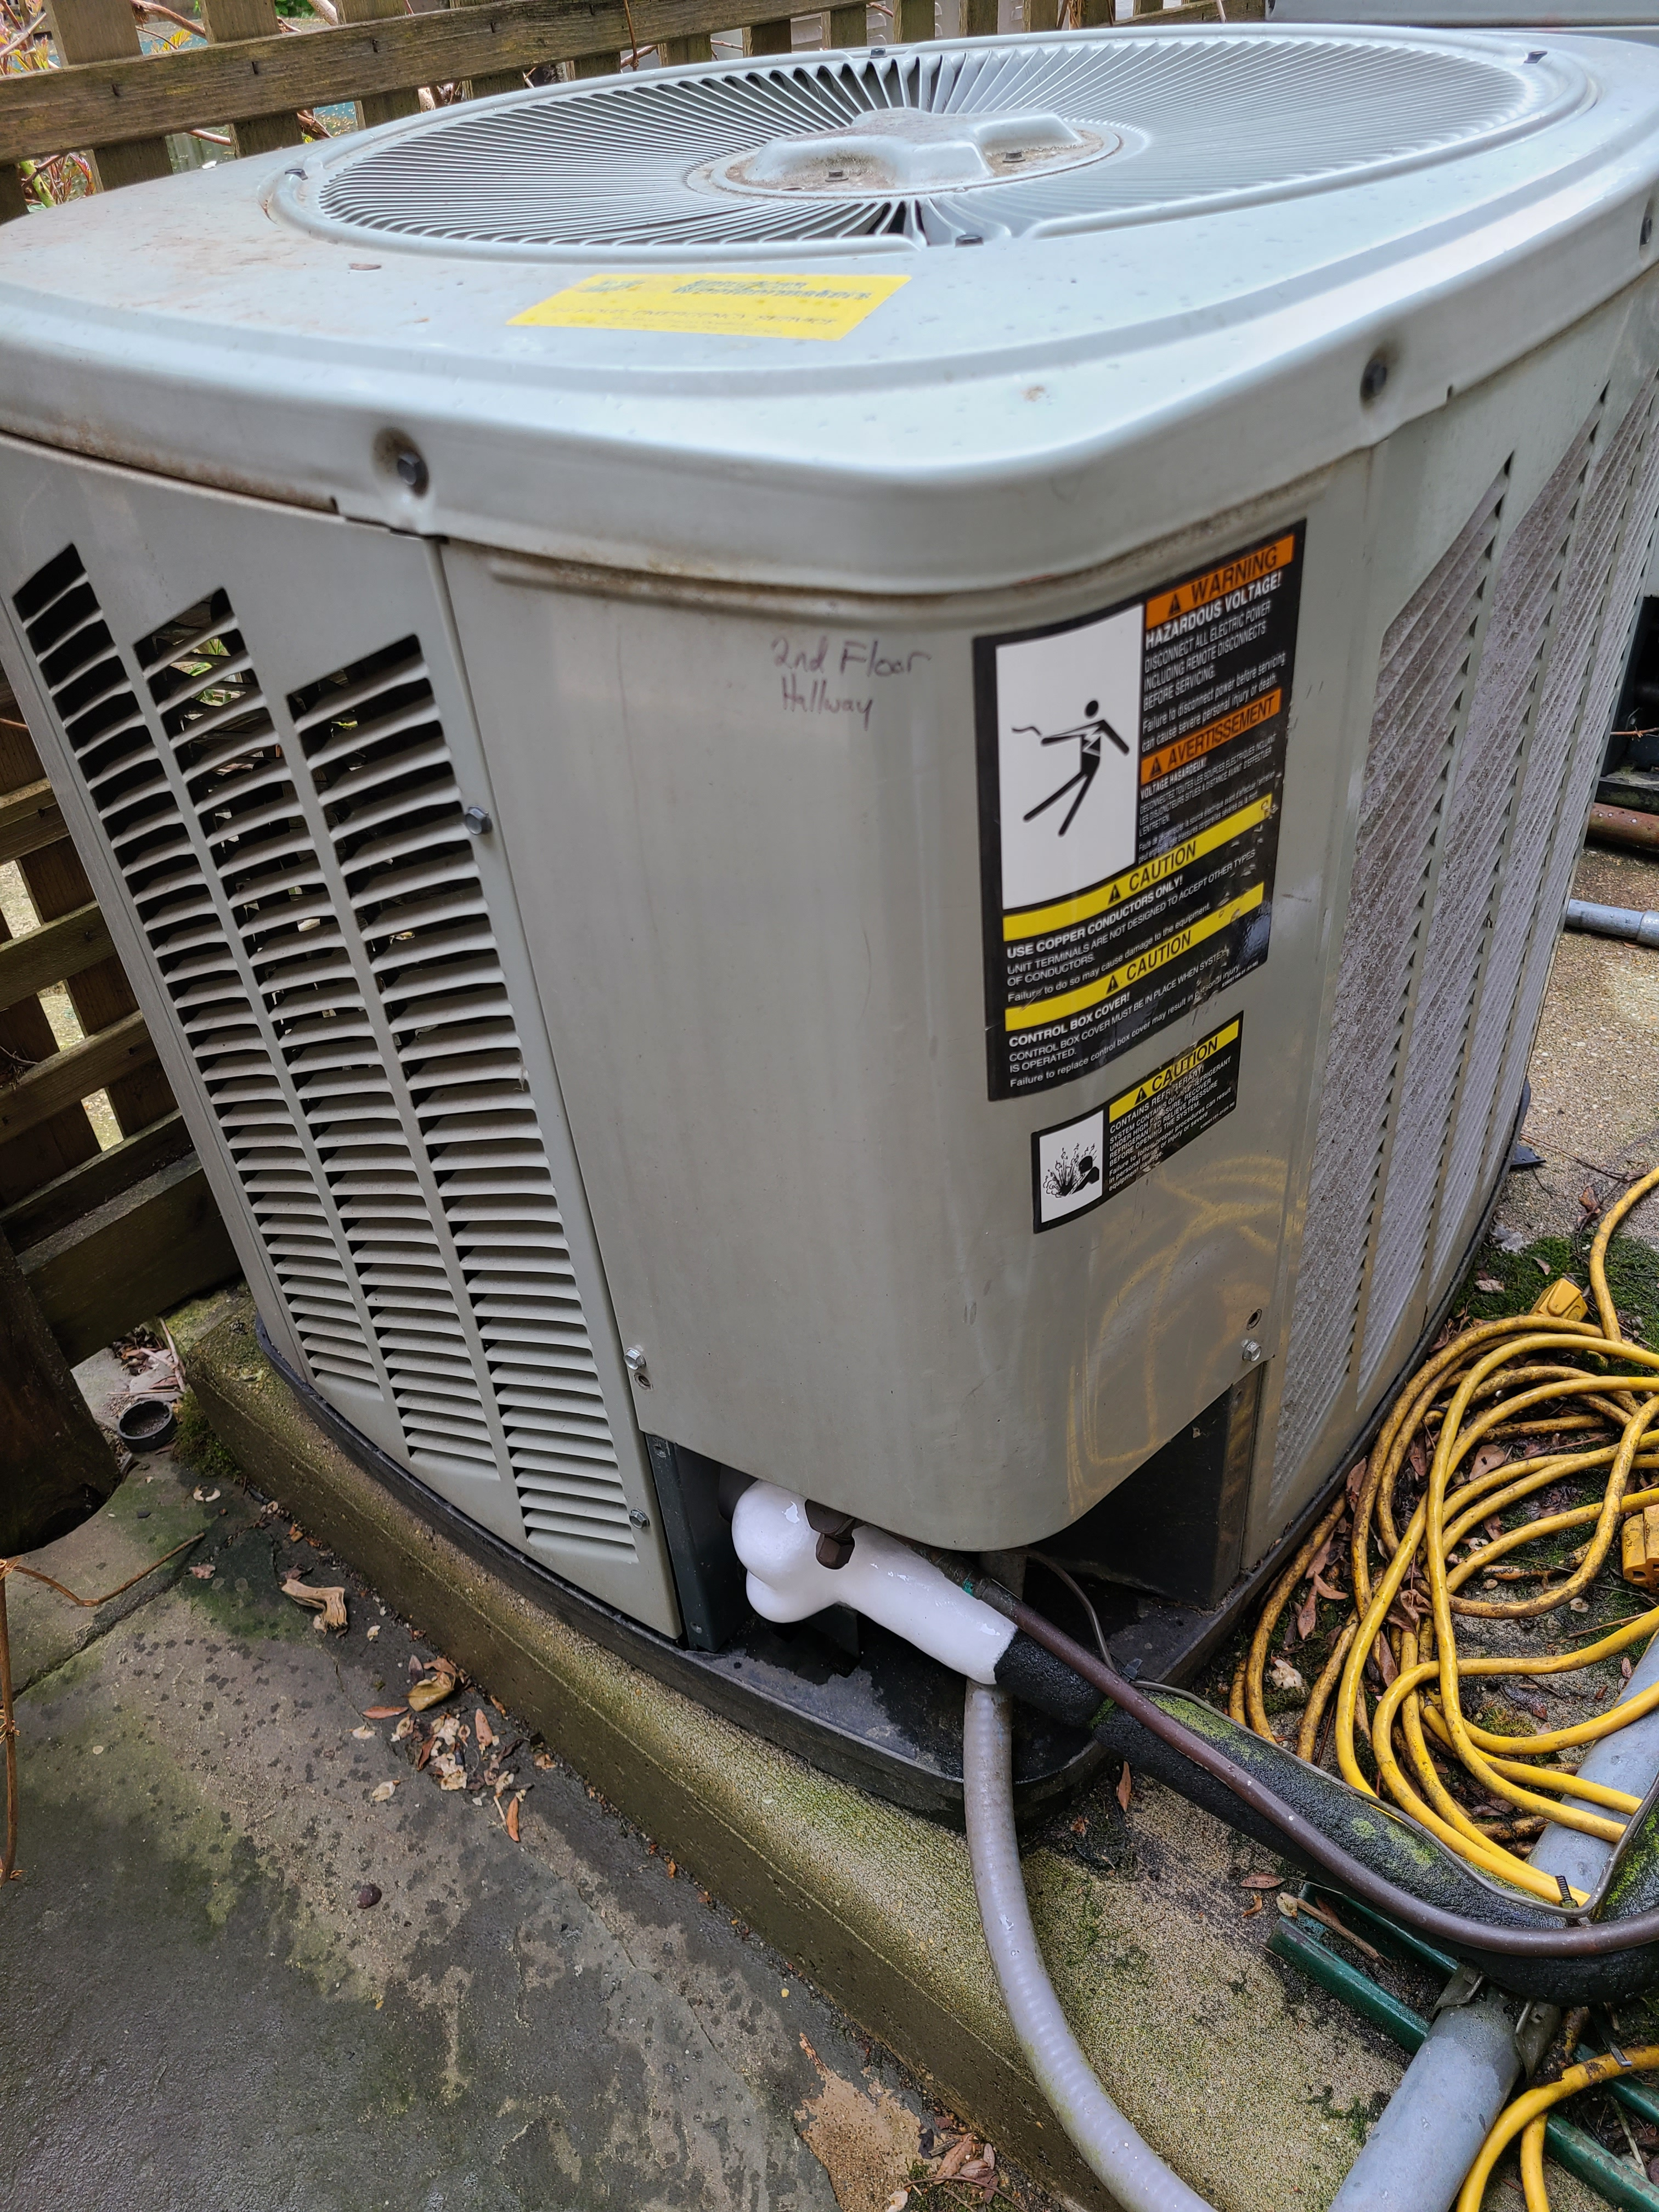 American Standard spring ac tune up. System found to be defective and new instalation to be performed.